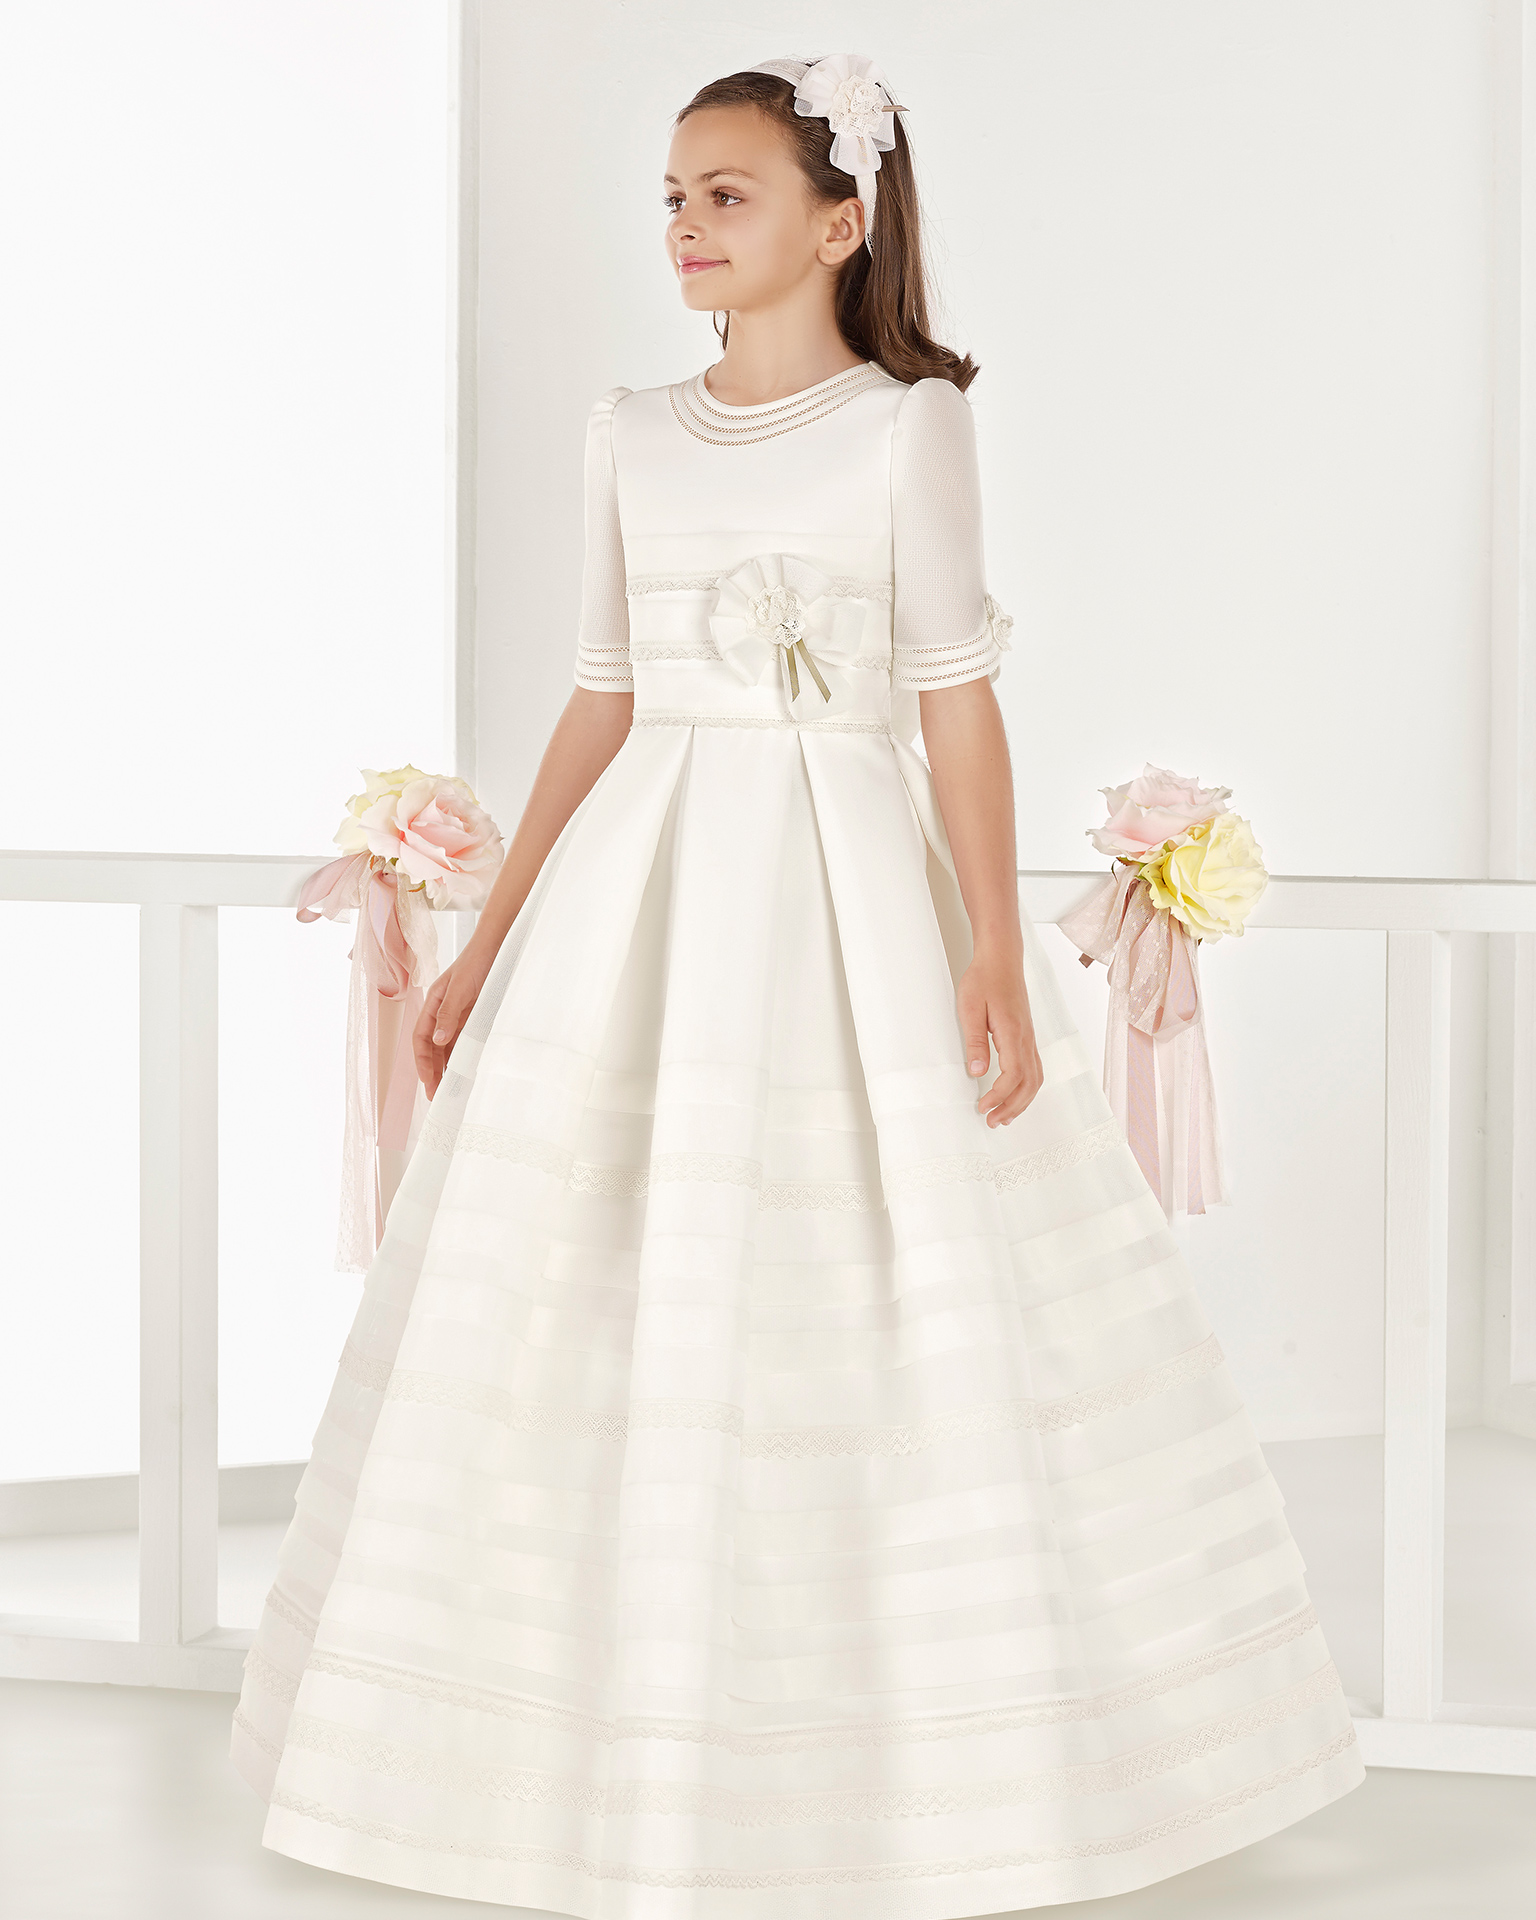 Classic basketweave First Communion dress with regular waist and pin tucks, in ivory. 2018 AIRE COMUNION Collection.